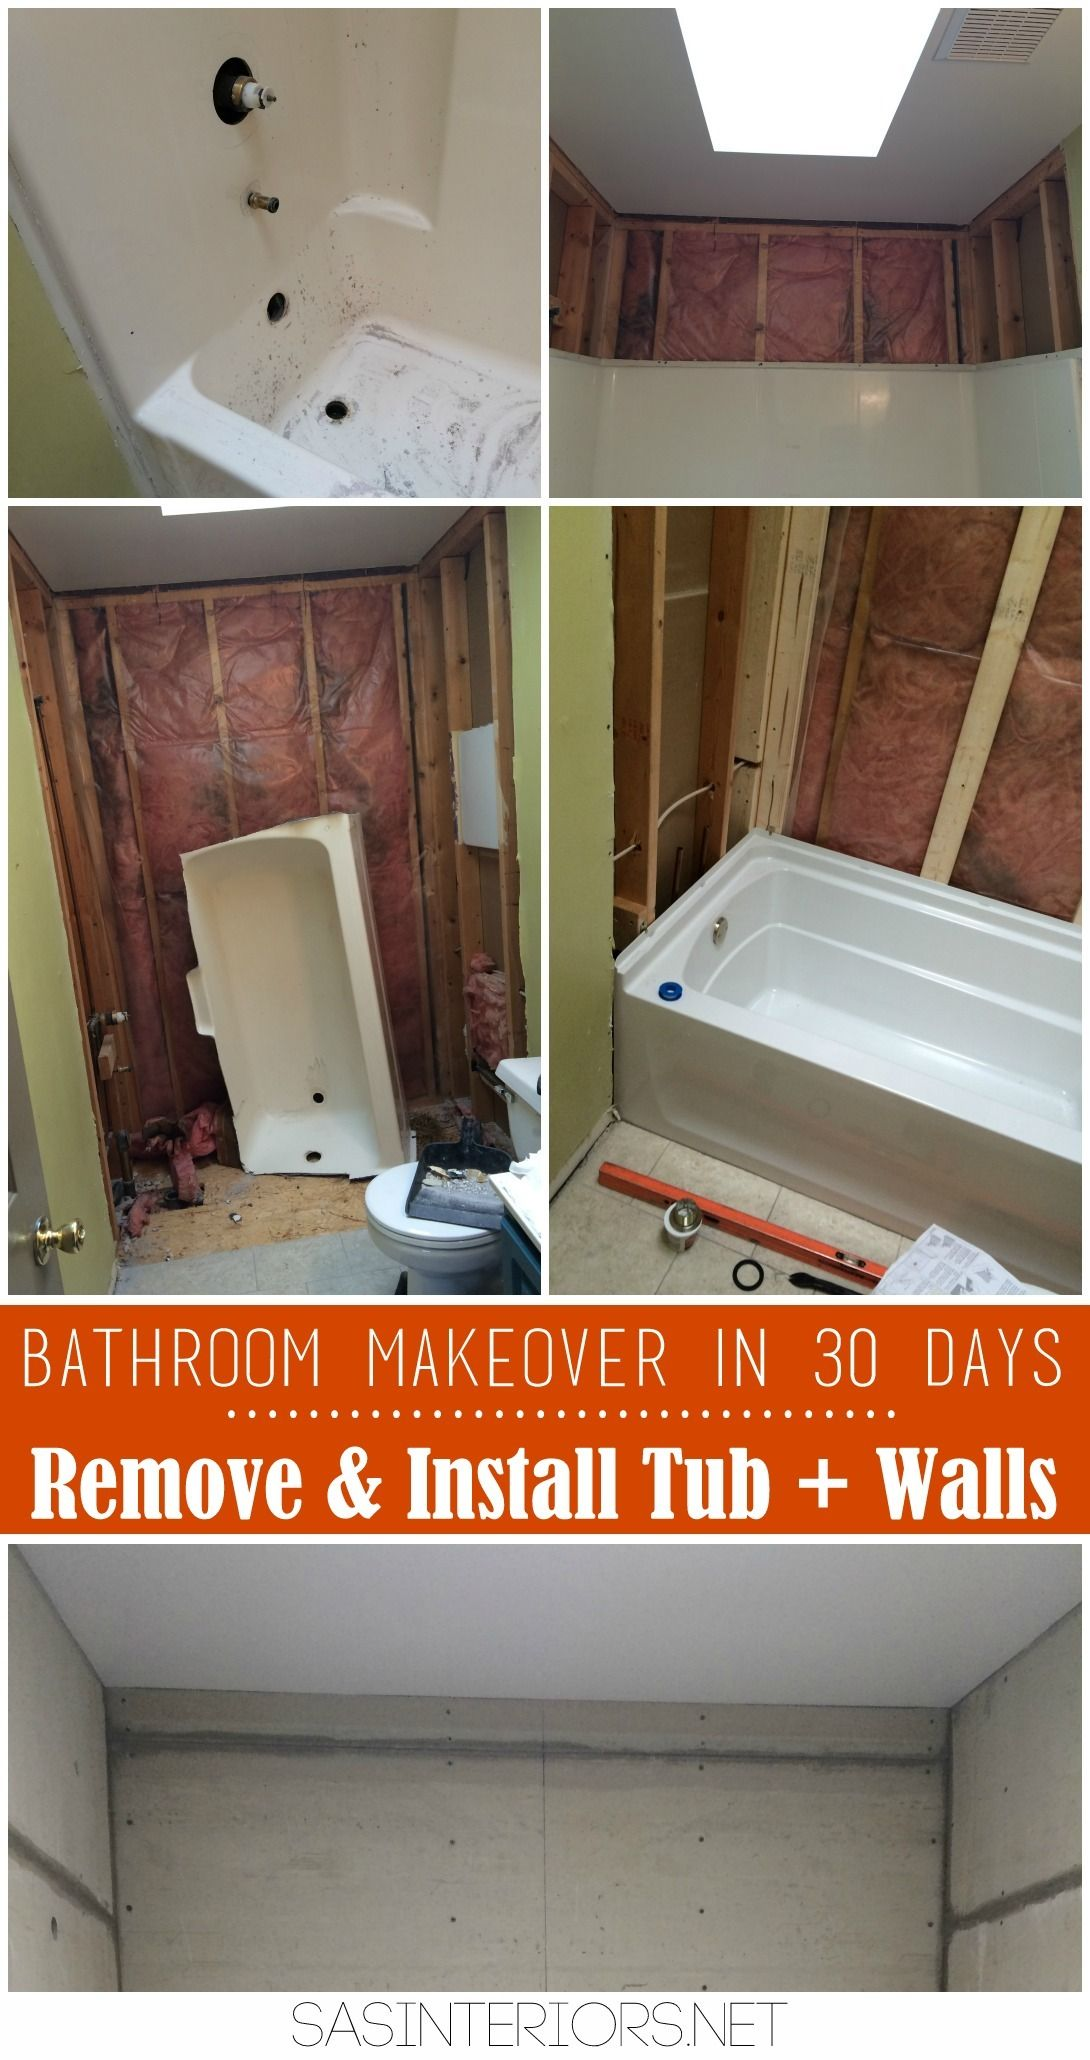 Ten Genius Storage Ideas For The Bathroom 1 Small Shower Remodel Shower Remodel Diy Bathroom Remodel